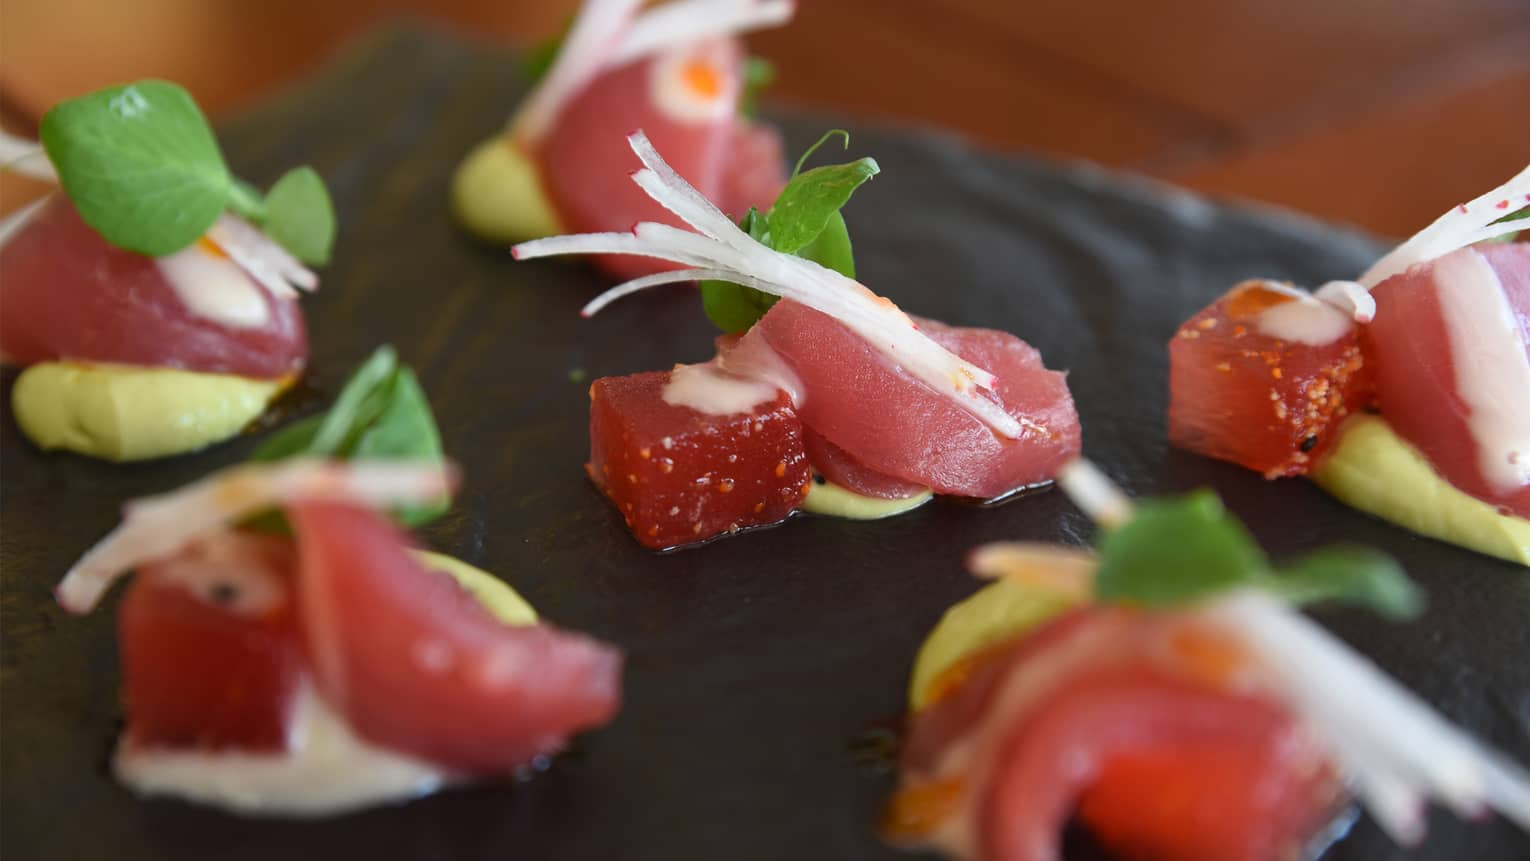 Small watermelon cubes with sashimi arranged on dish, garnished with crispy white radish, mint